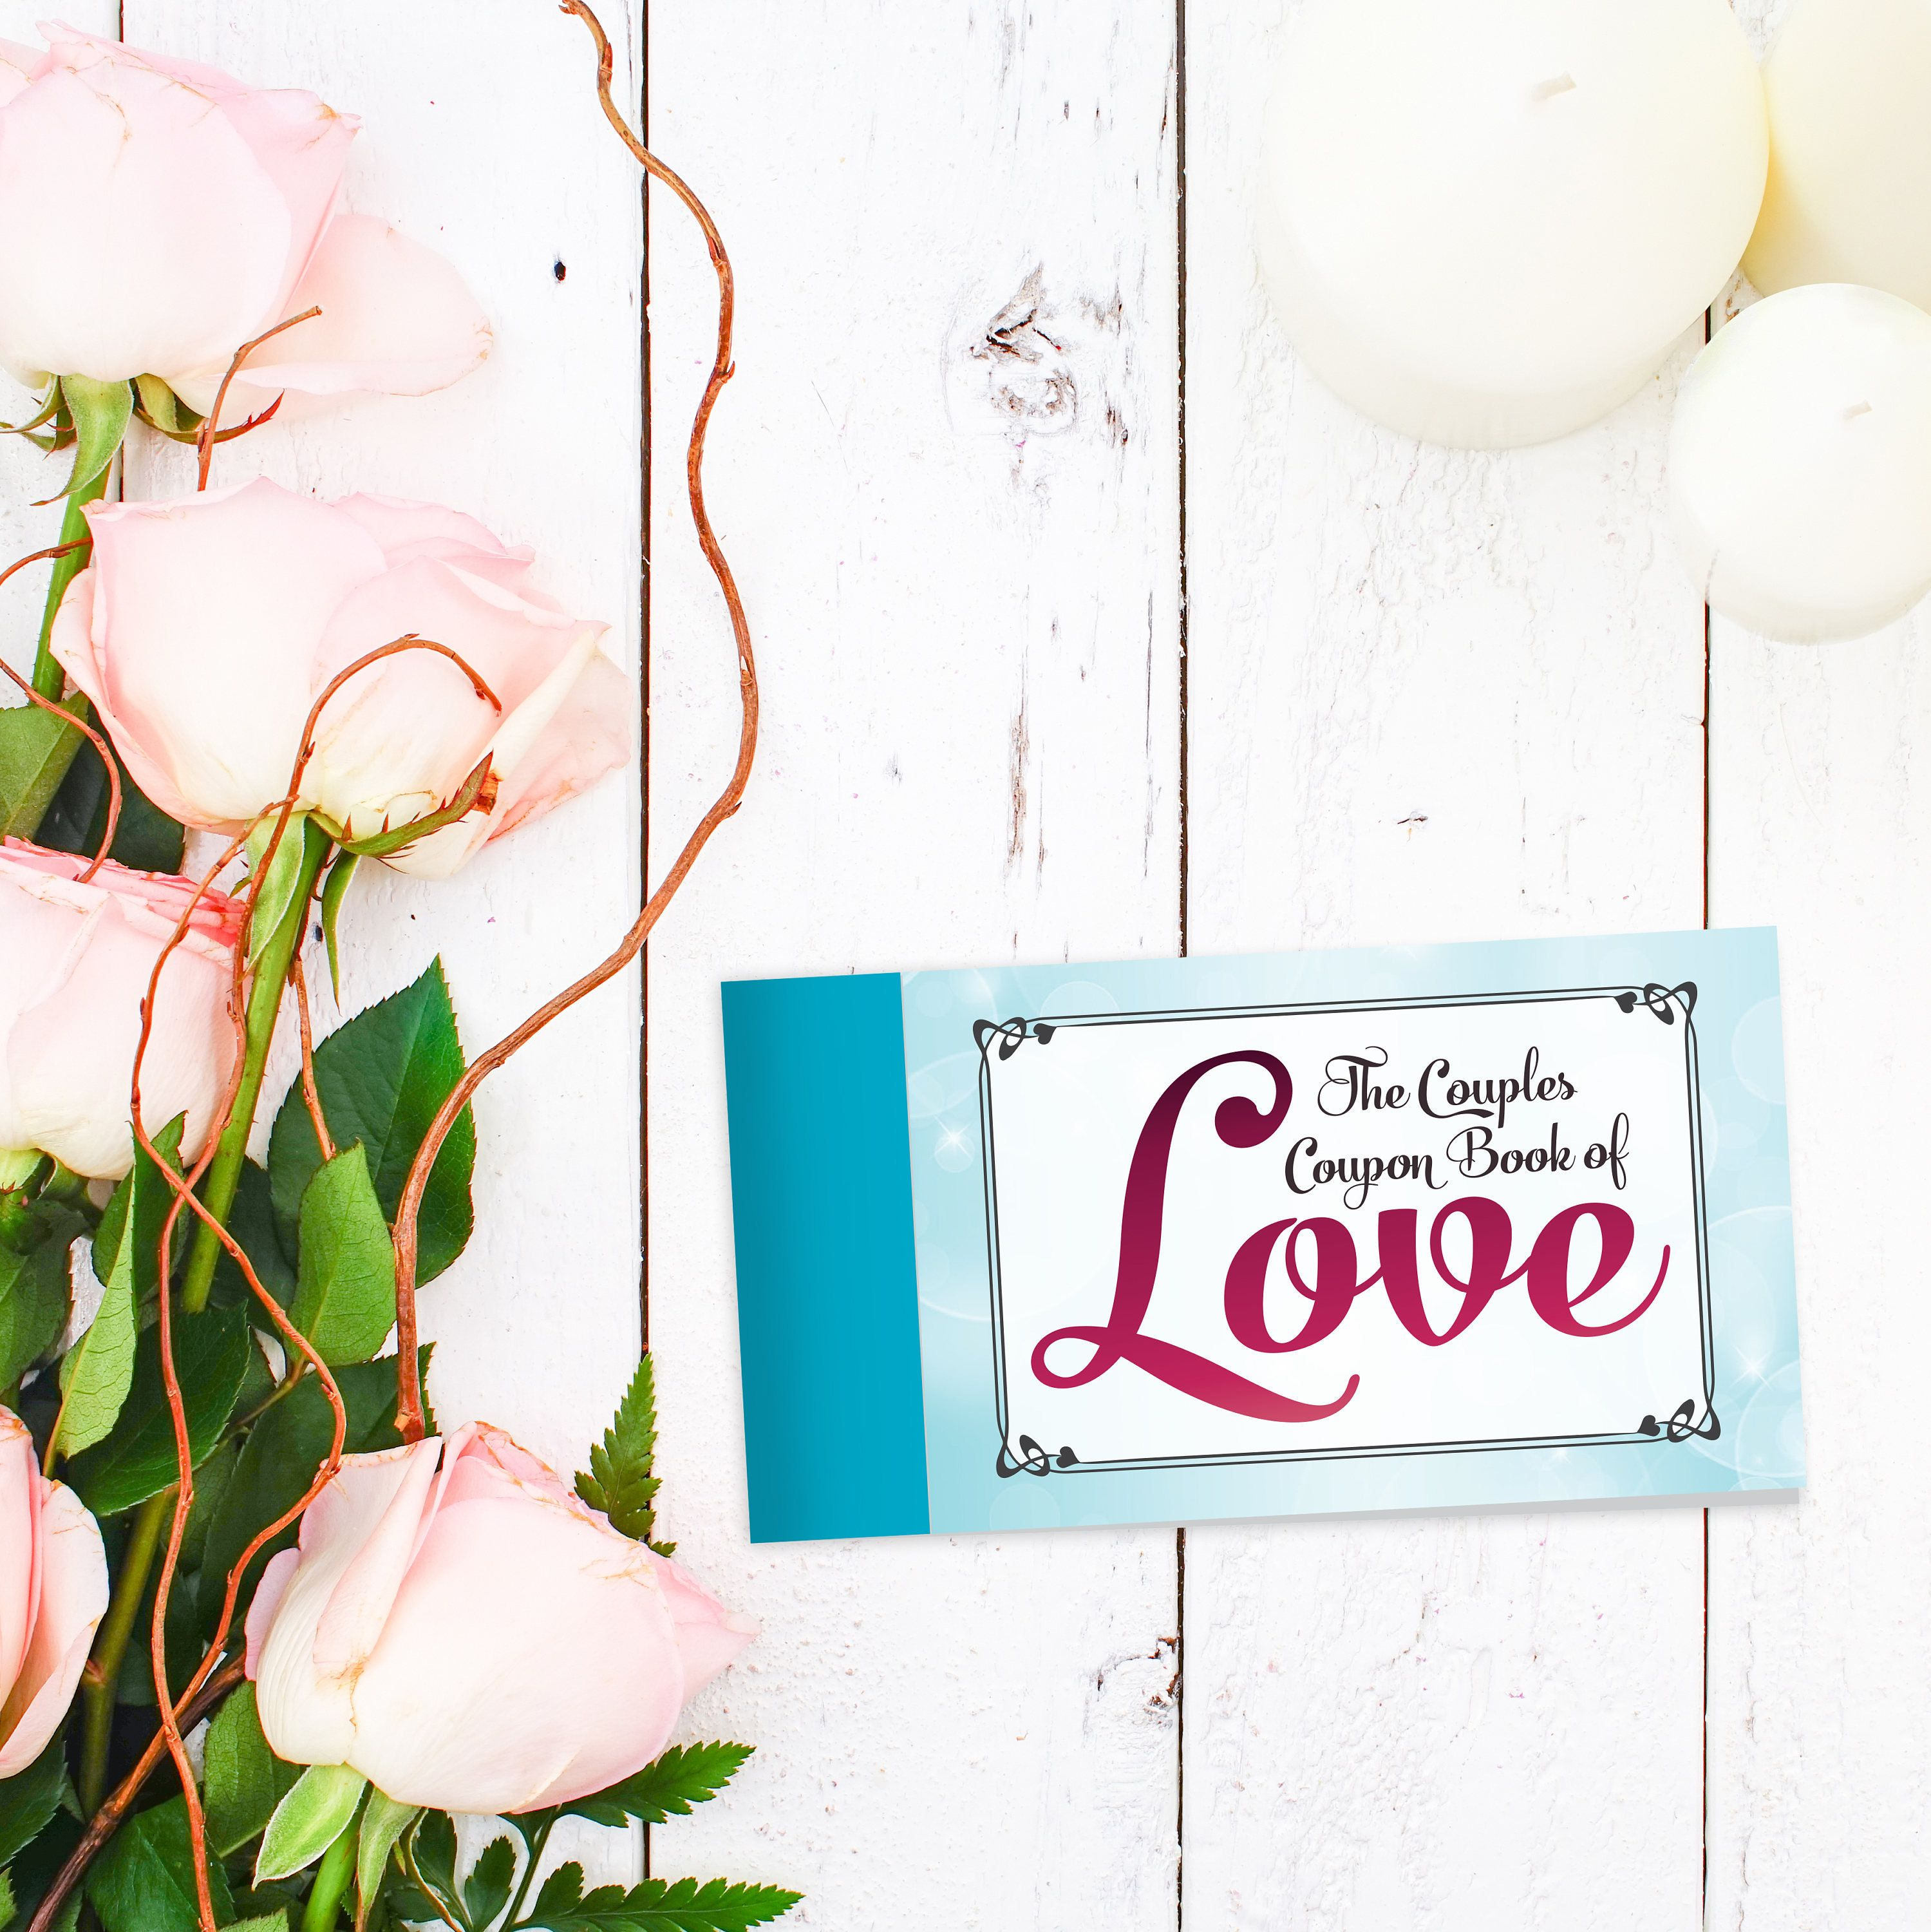 the couples coupon book of love | tangiblekisses | pinterest